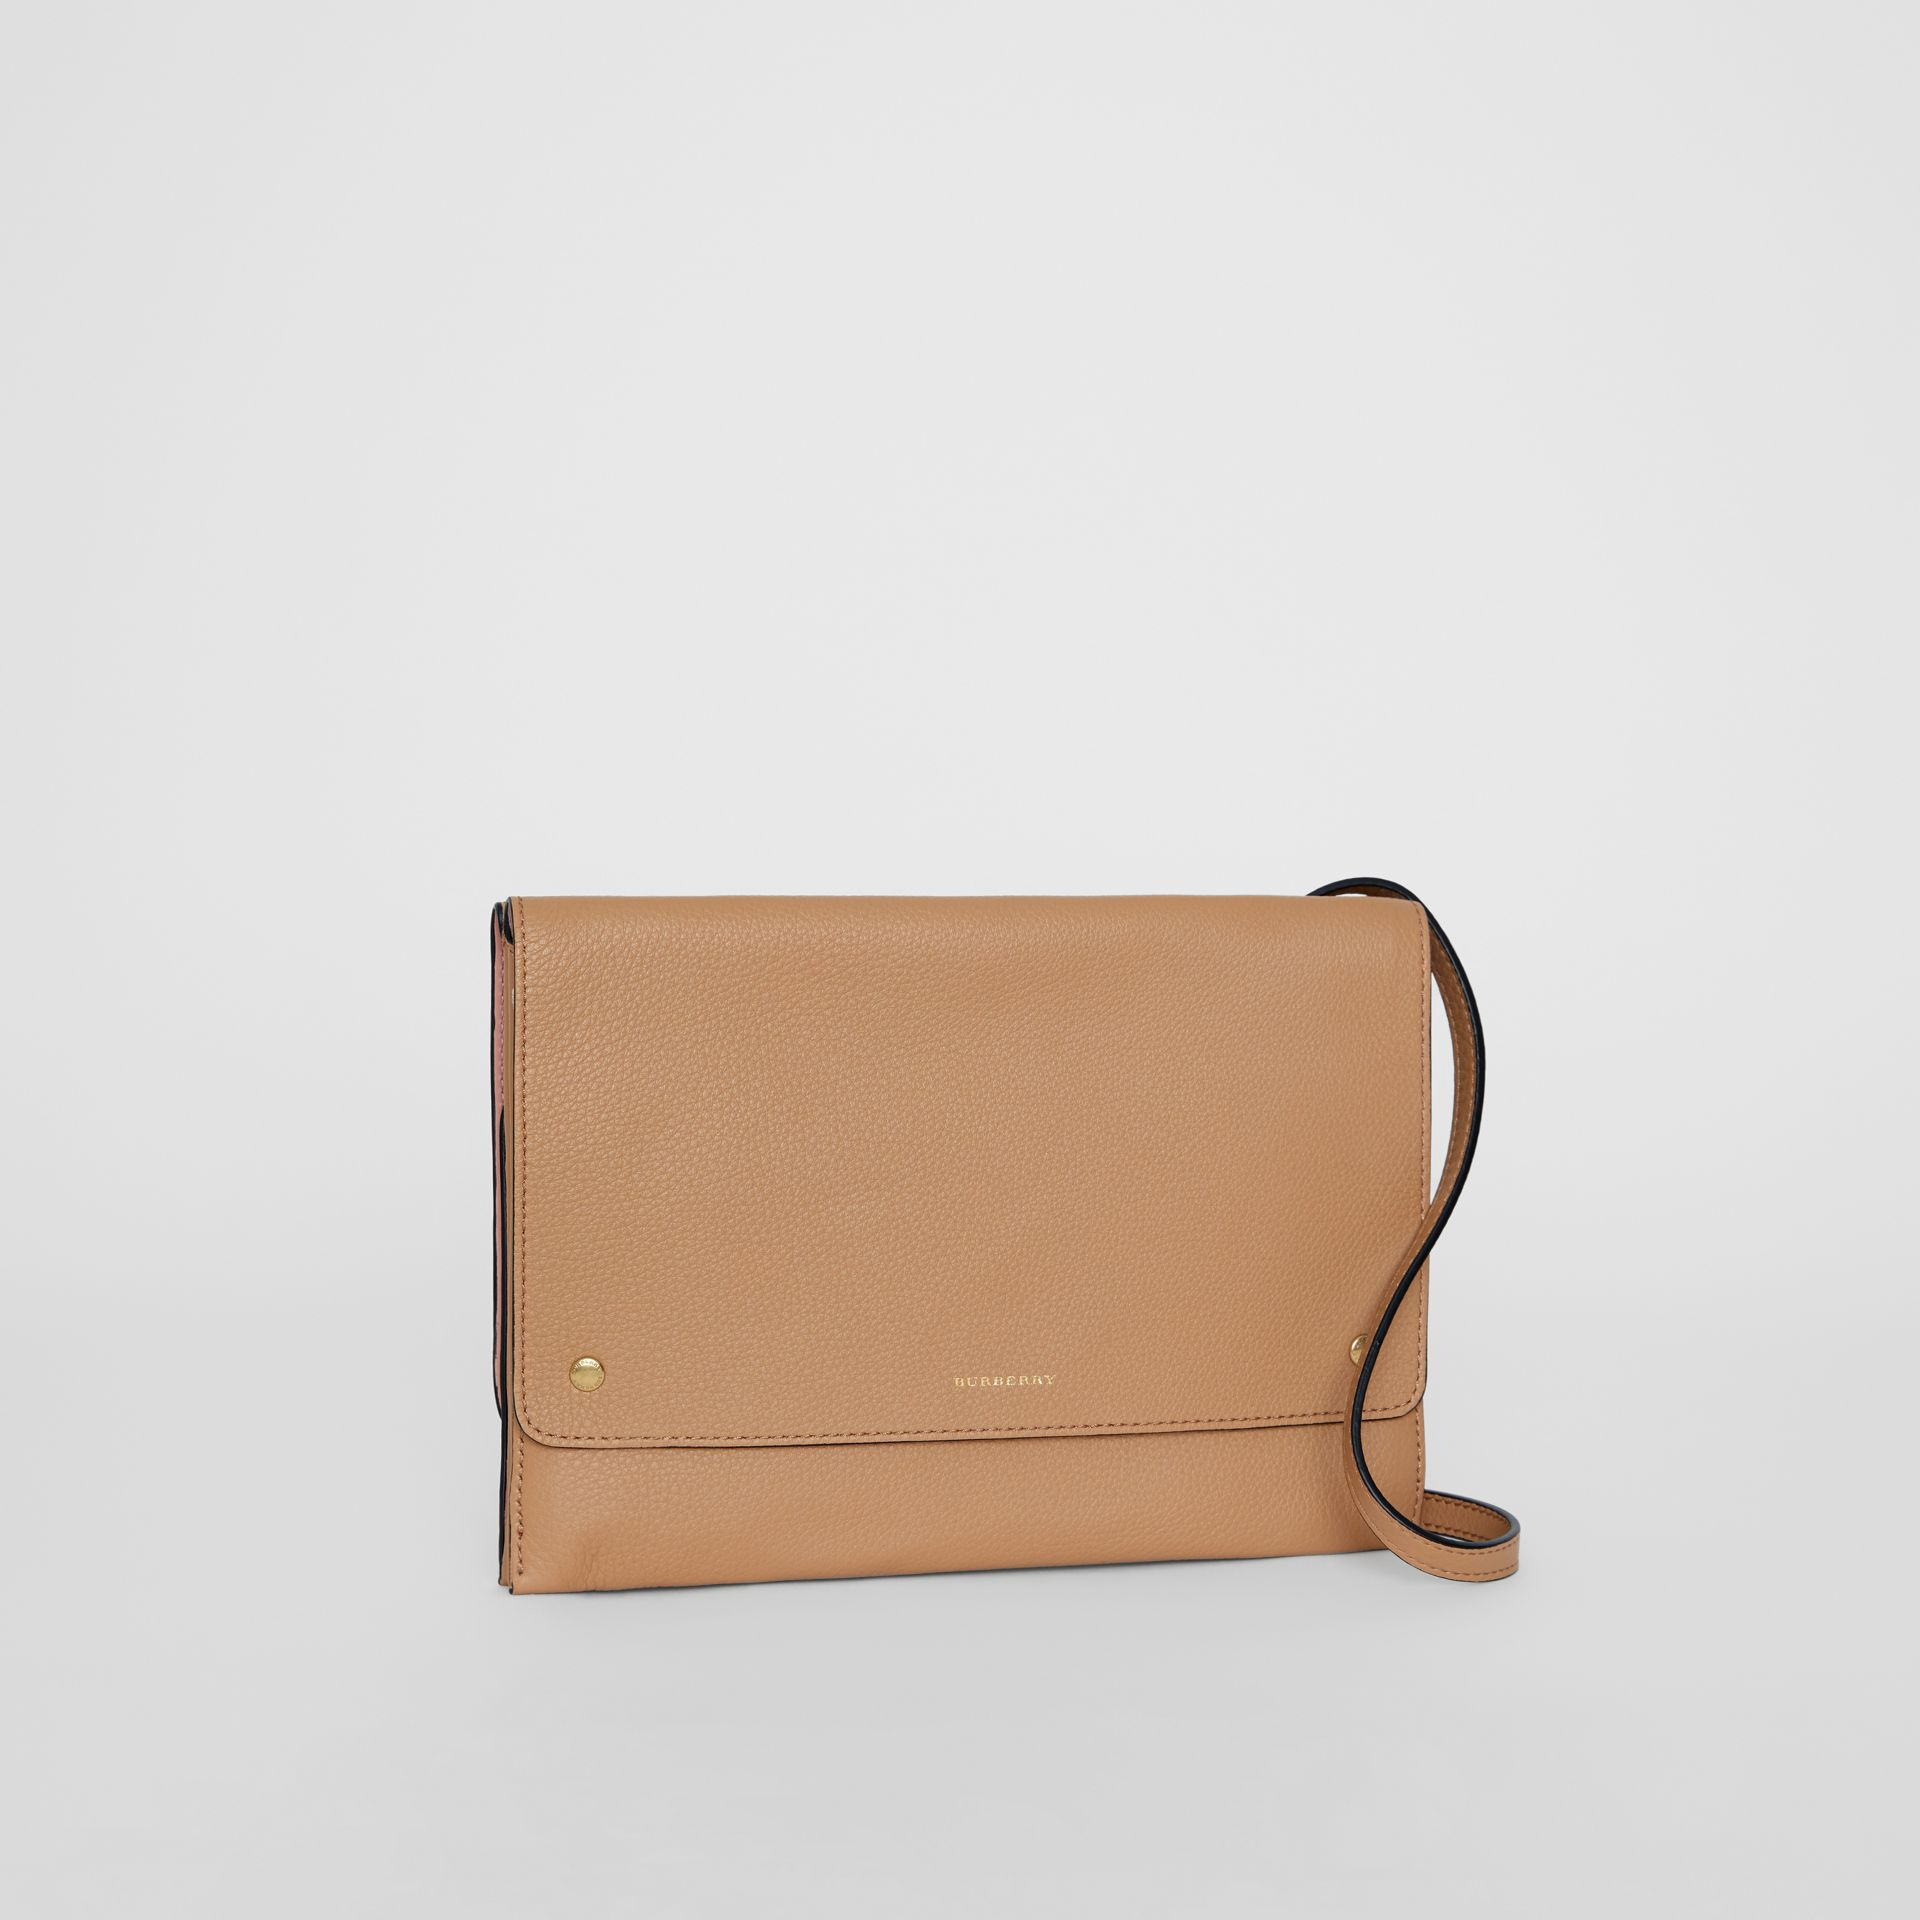 Leather Envelope Crossbody Bag in Light Camel - Women | Burberry United States - gallery image 6